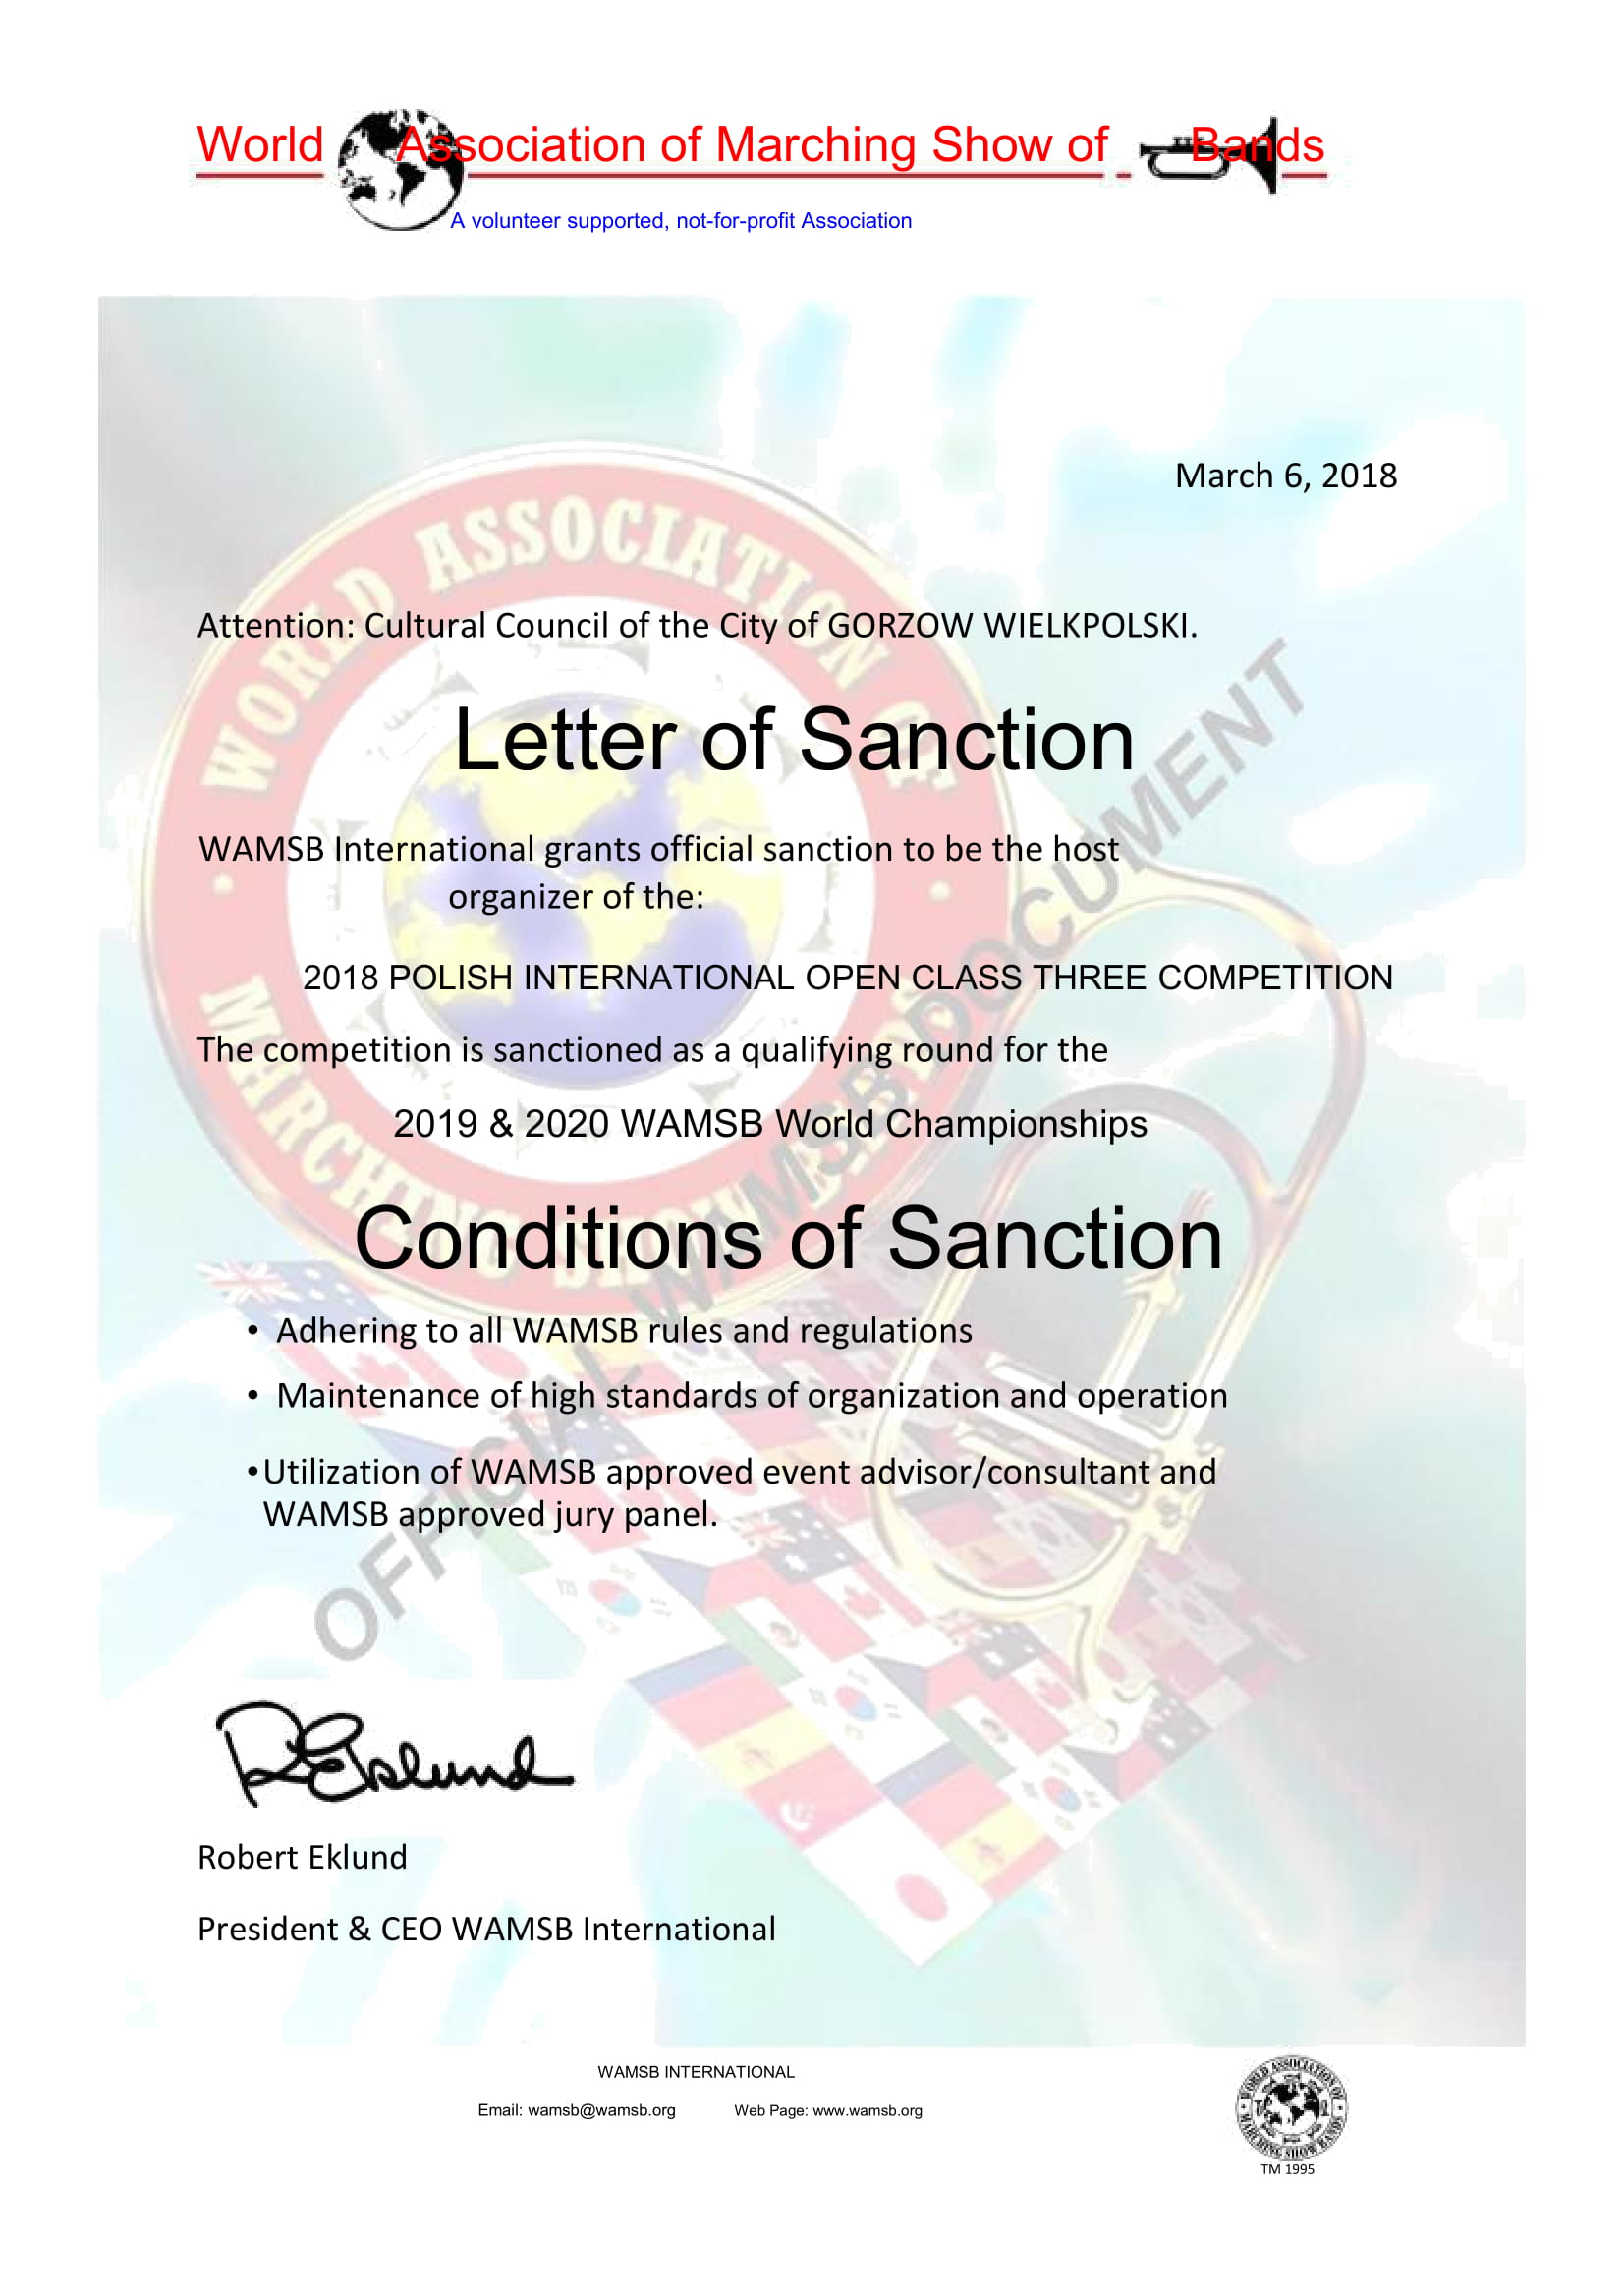 WAMSB_POLAND_letter_of_sanction_2018_REVISED2-2B-1.jpg